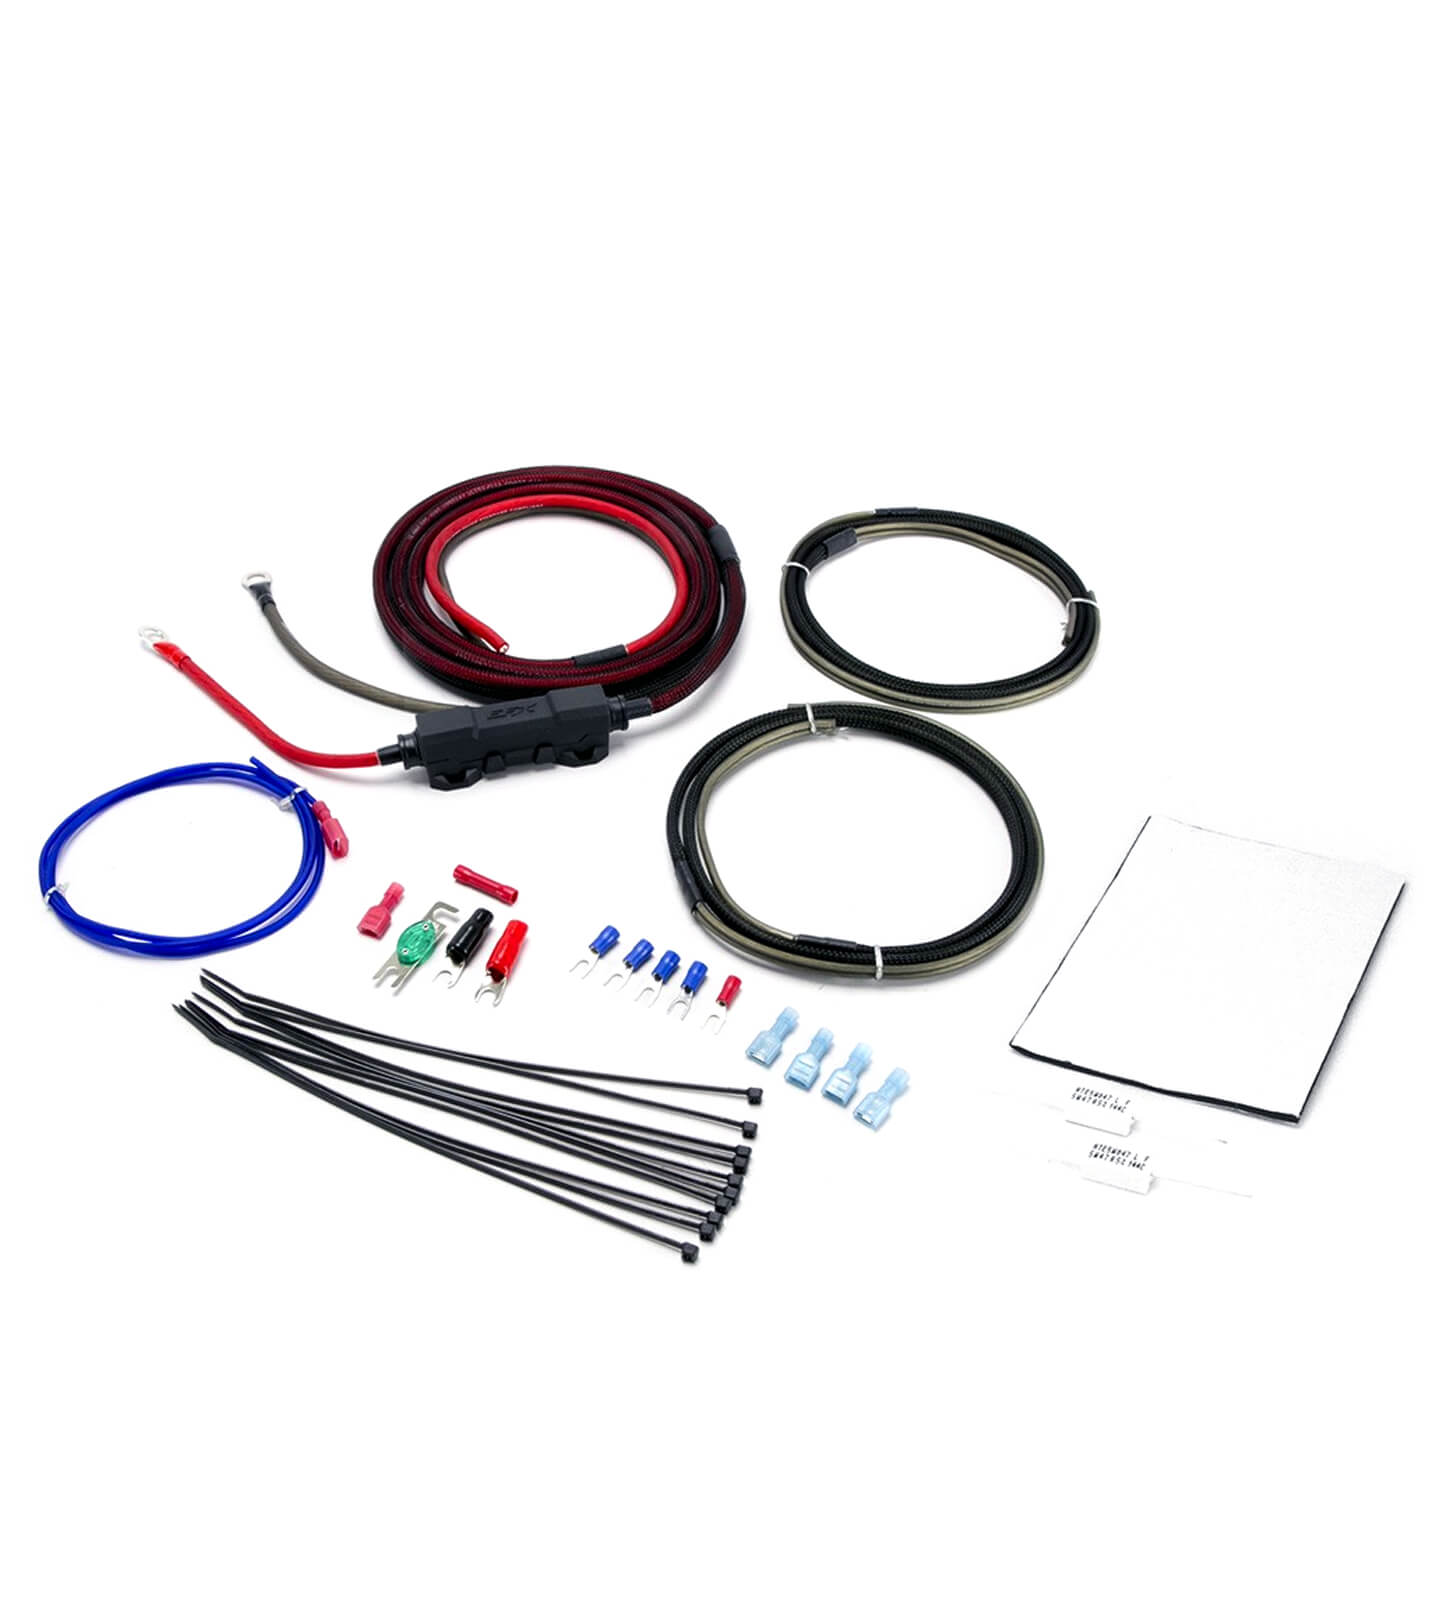 Pioneer CD Radio Harley Adapter Install Kit, 6.5